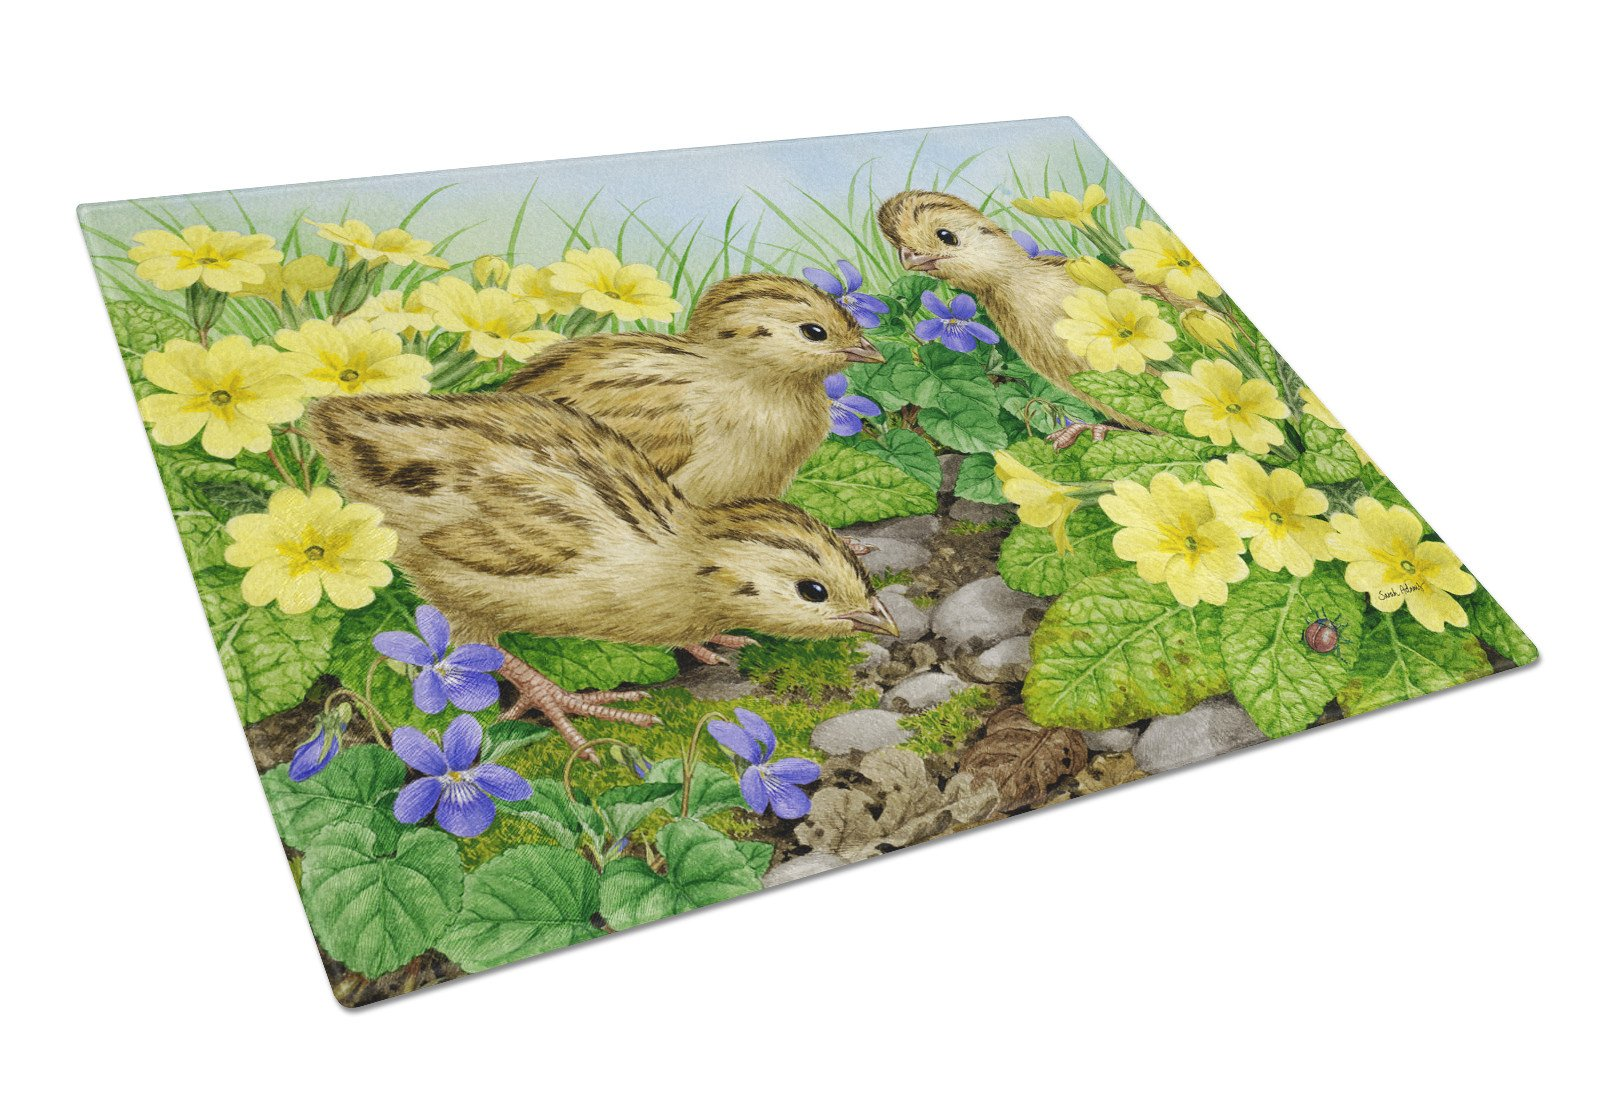 Pheasant Chicks Glass Cutting Board Large ASA2177LCB by Caroline's Treasures